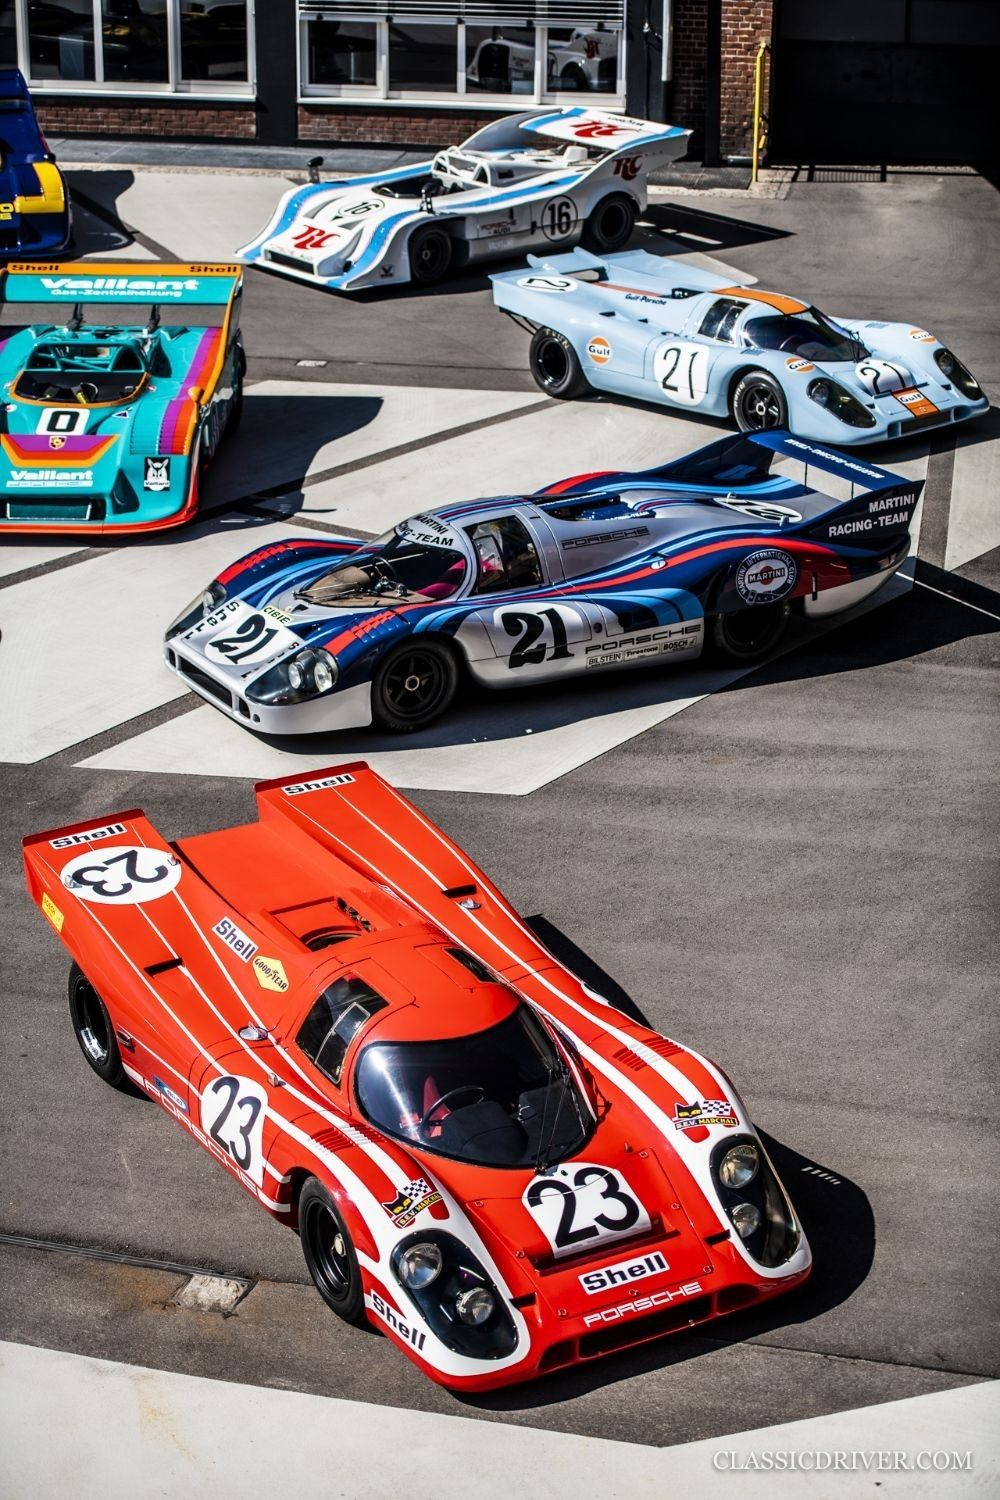 Pin by حامد عرب on Carsssss in 2020 Classic racing cars